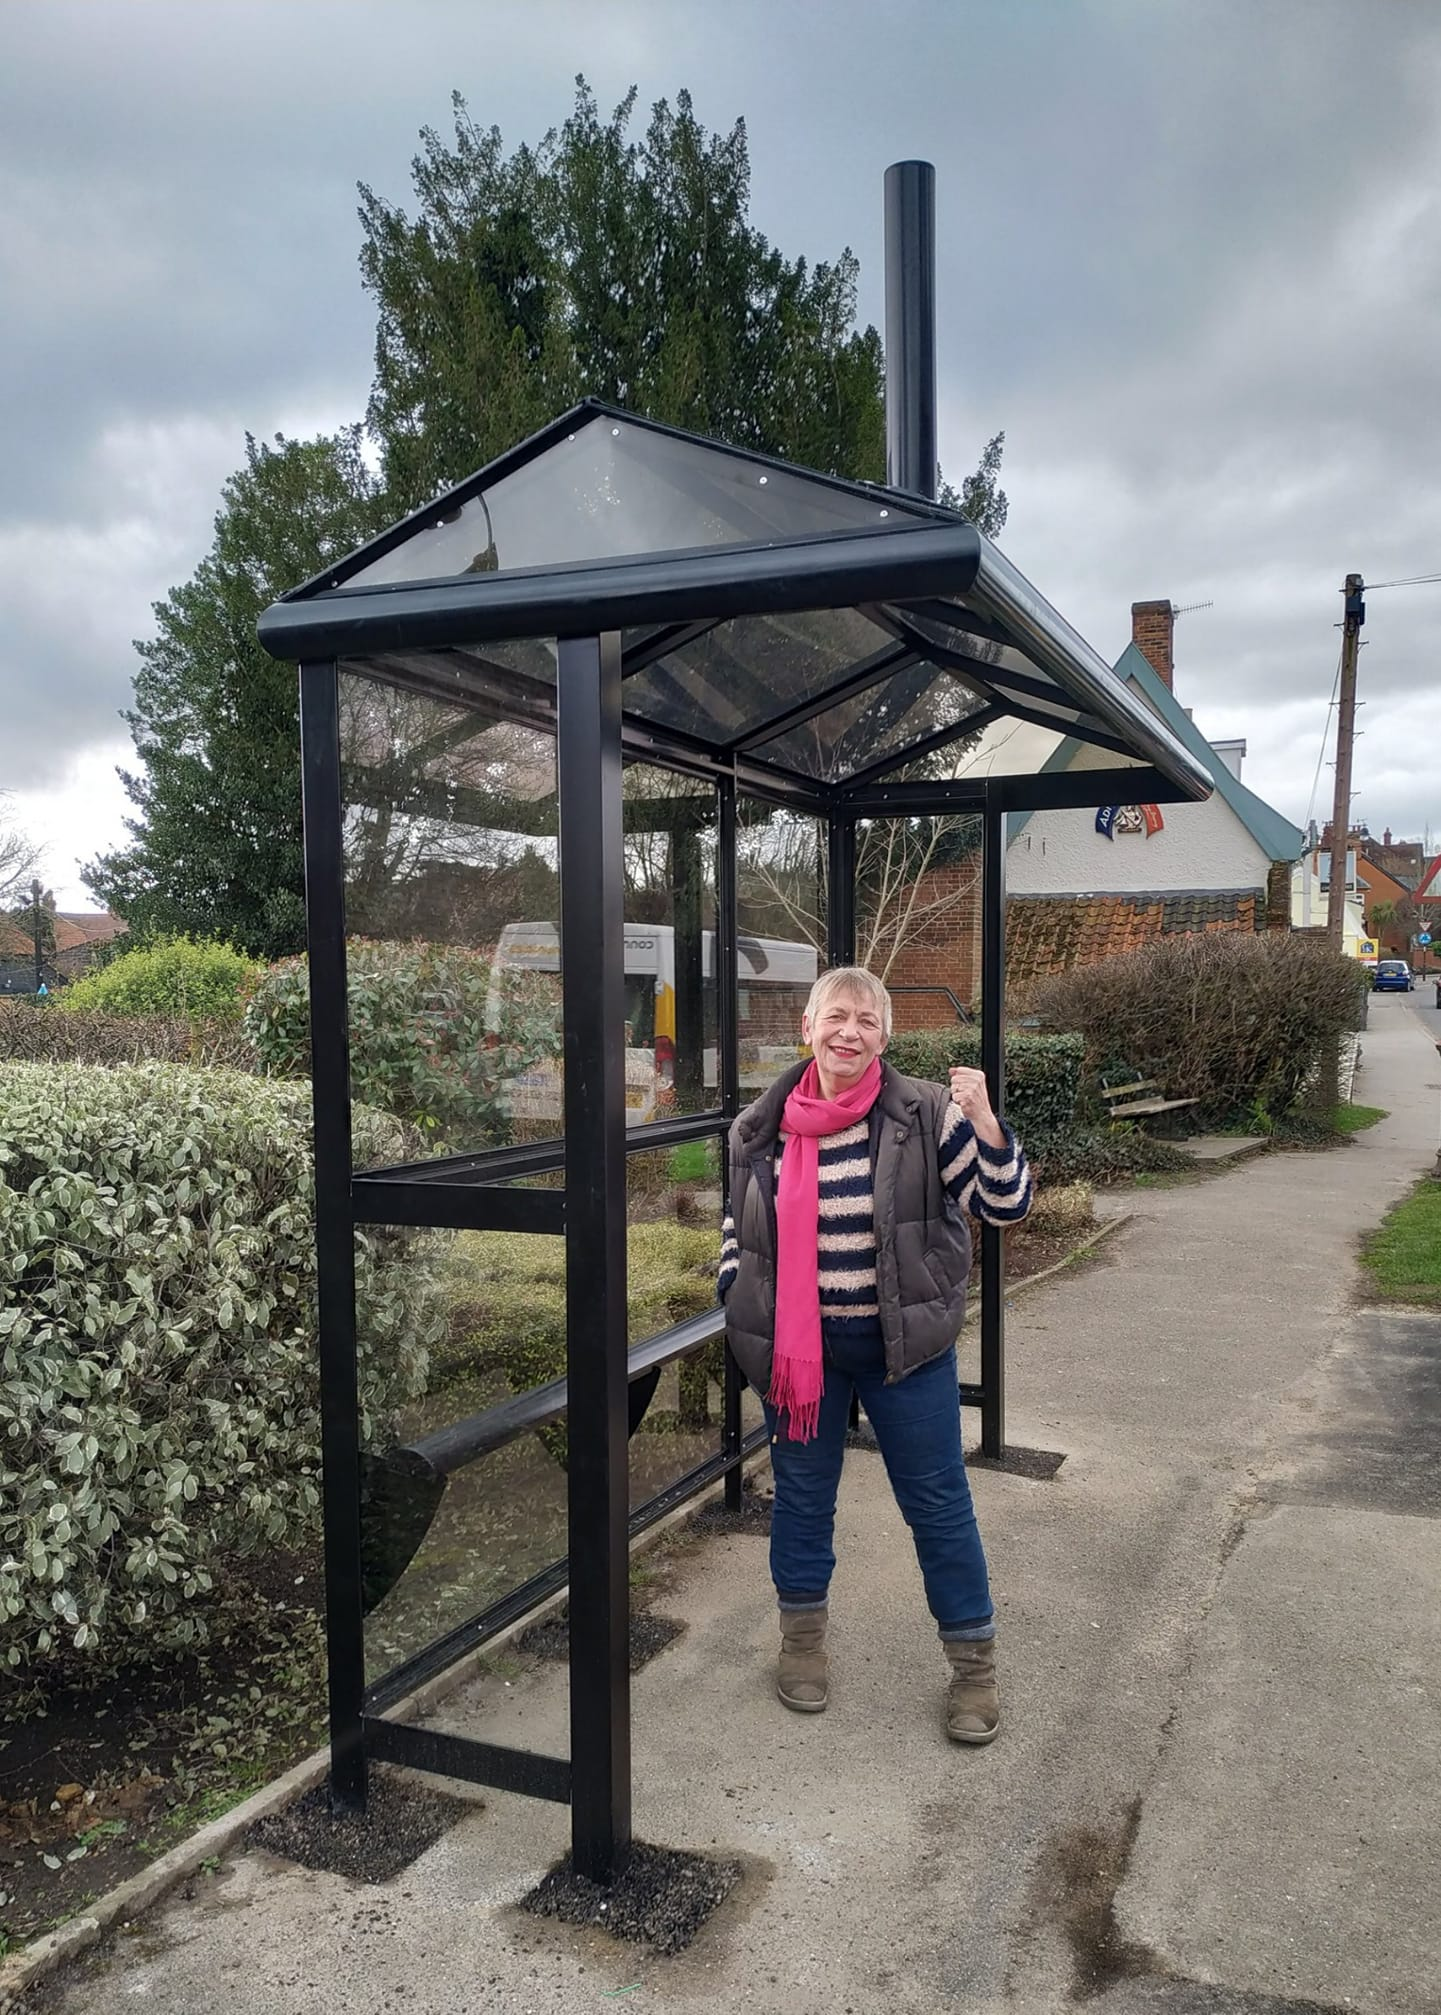 Caroline Page standing very pleased in a clearly new bus shelter with the ancient, yellow Cherry Tree inn behind her